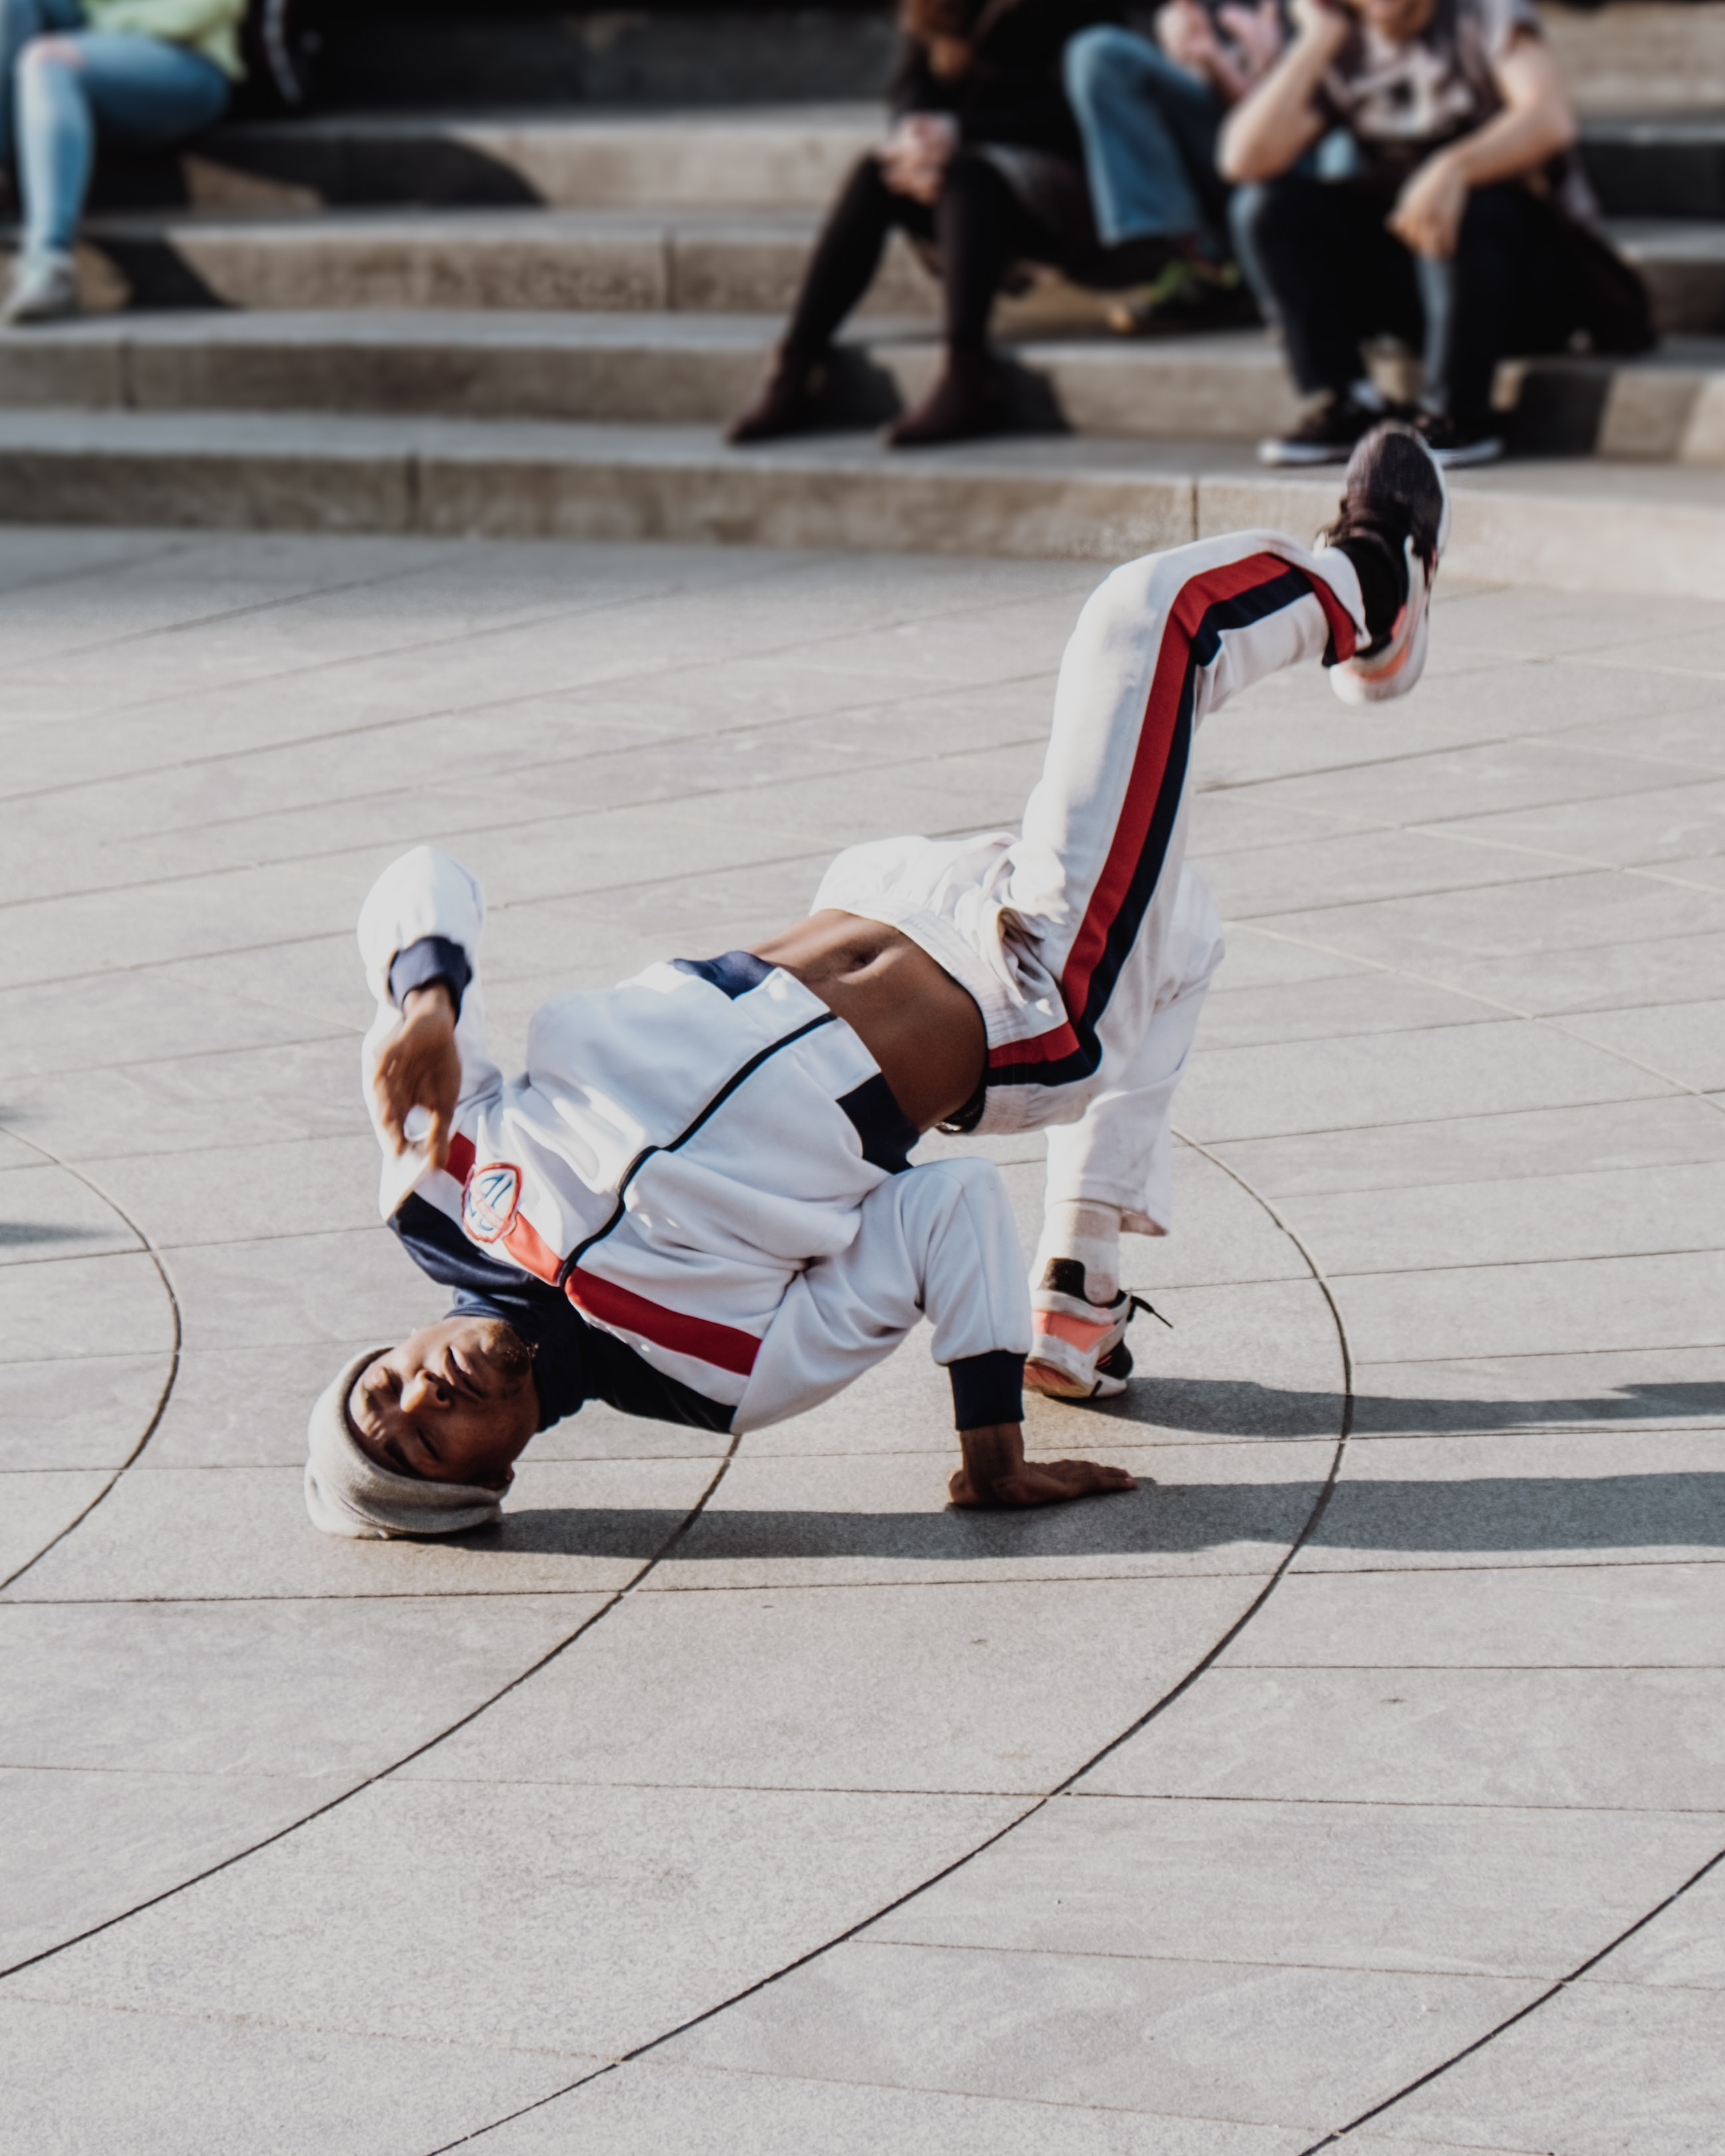 man doing bboy in front of people at daytime